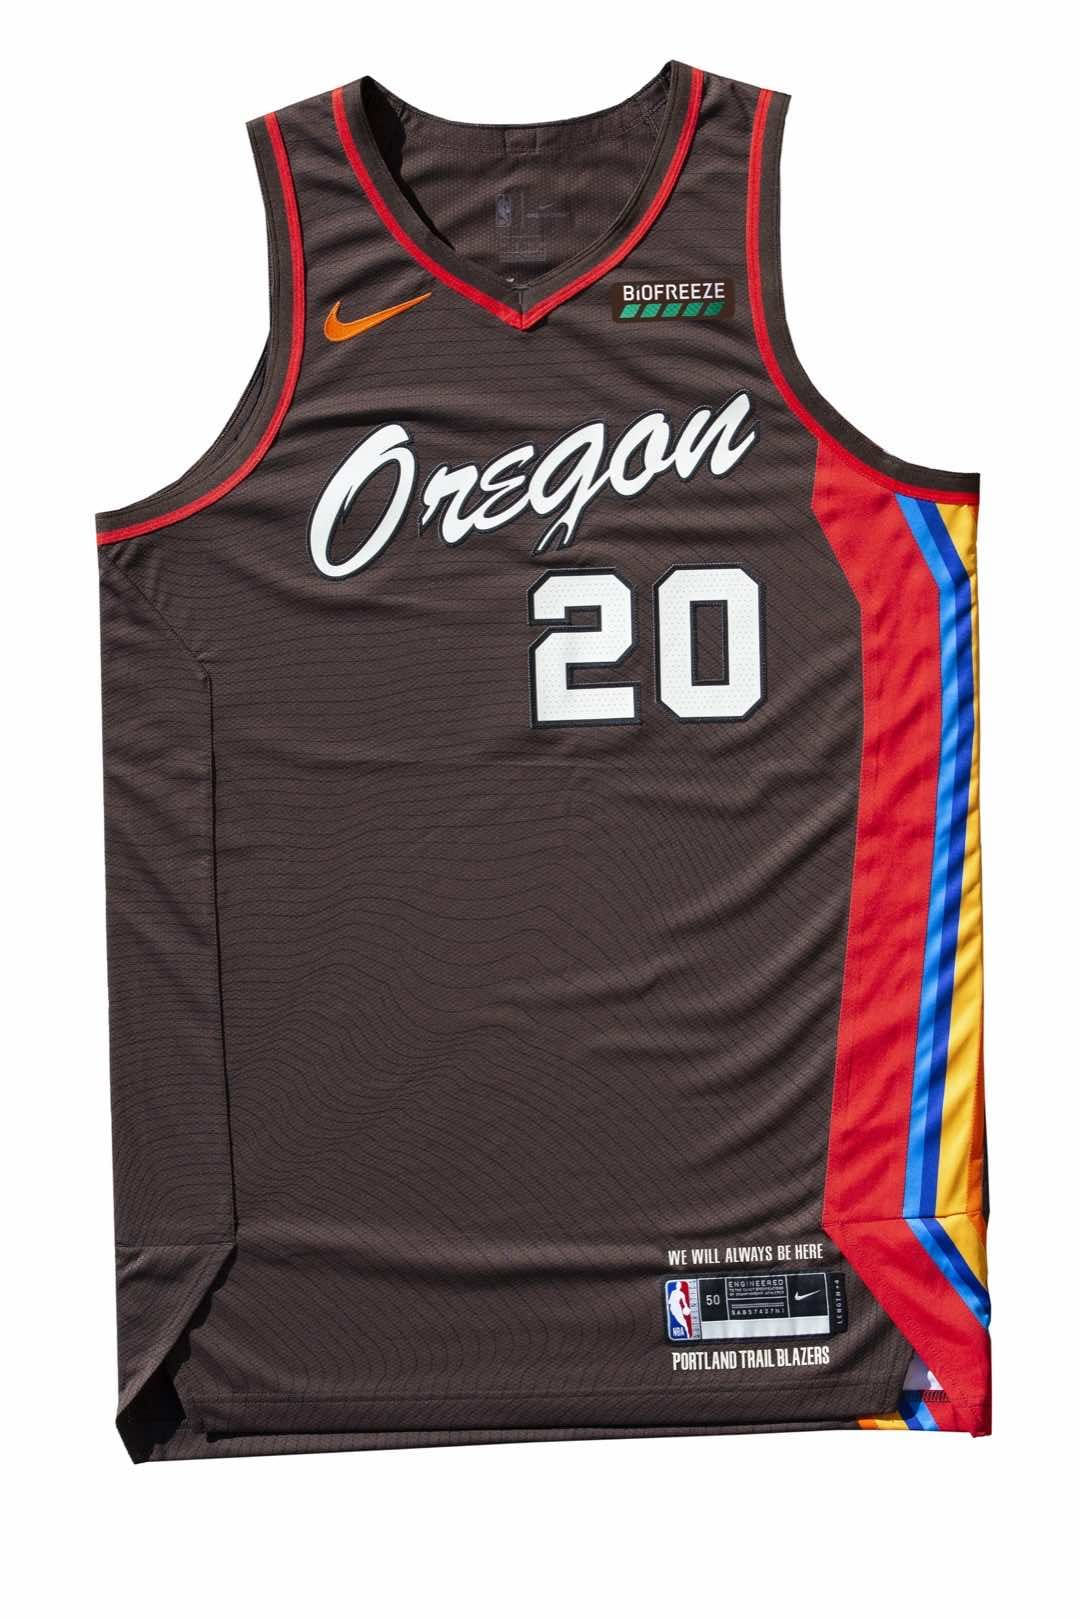 Take a look at the 2020-21 City Edition uniform, celebrating the spirit of Oregon.